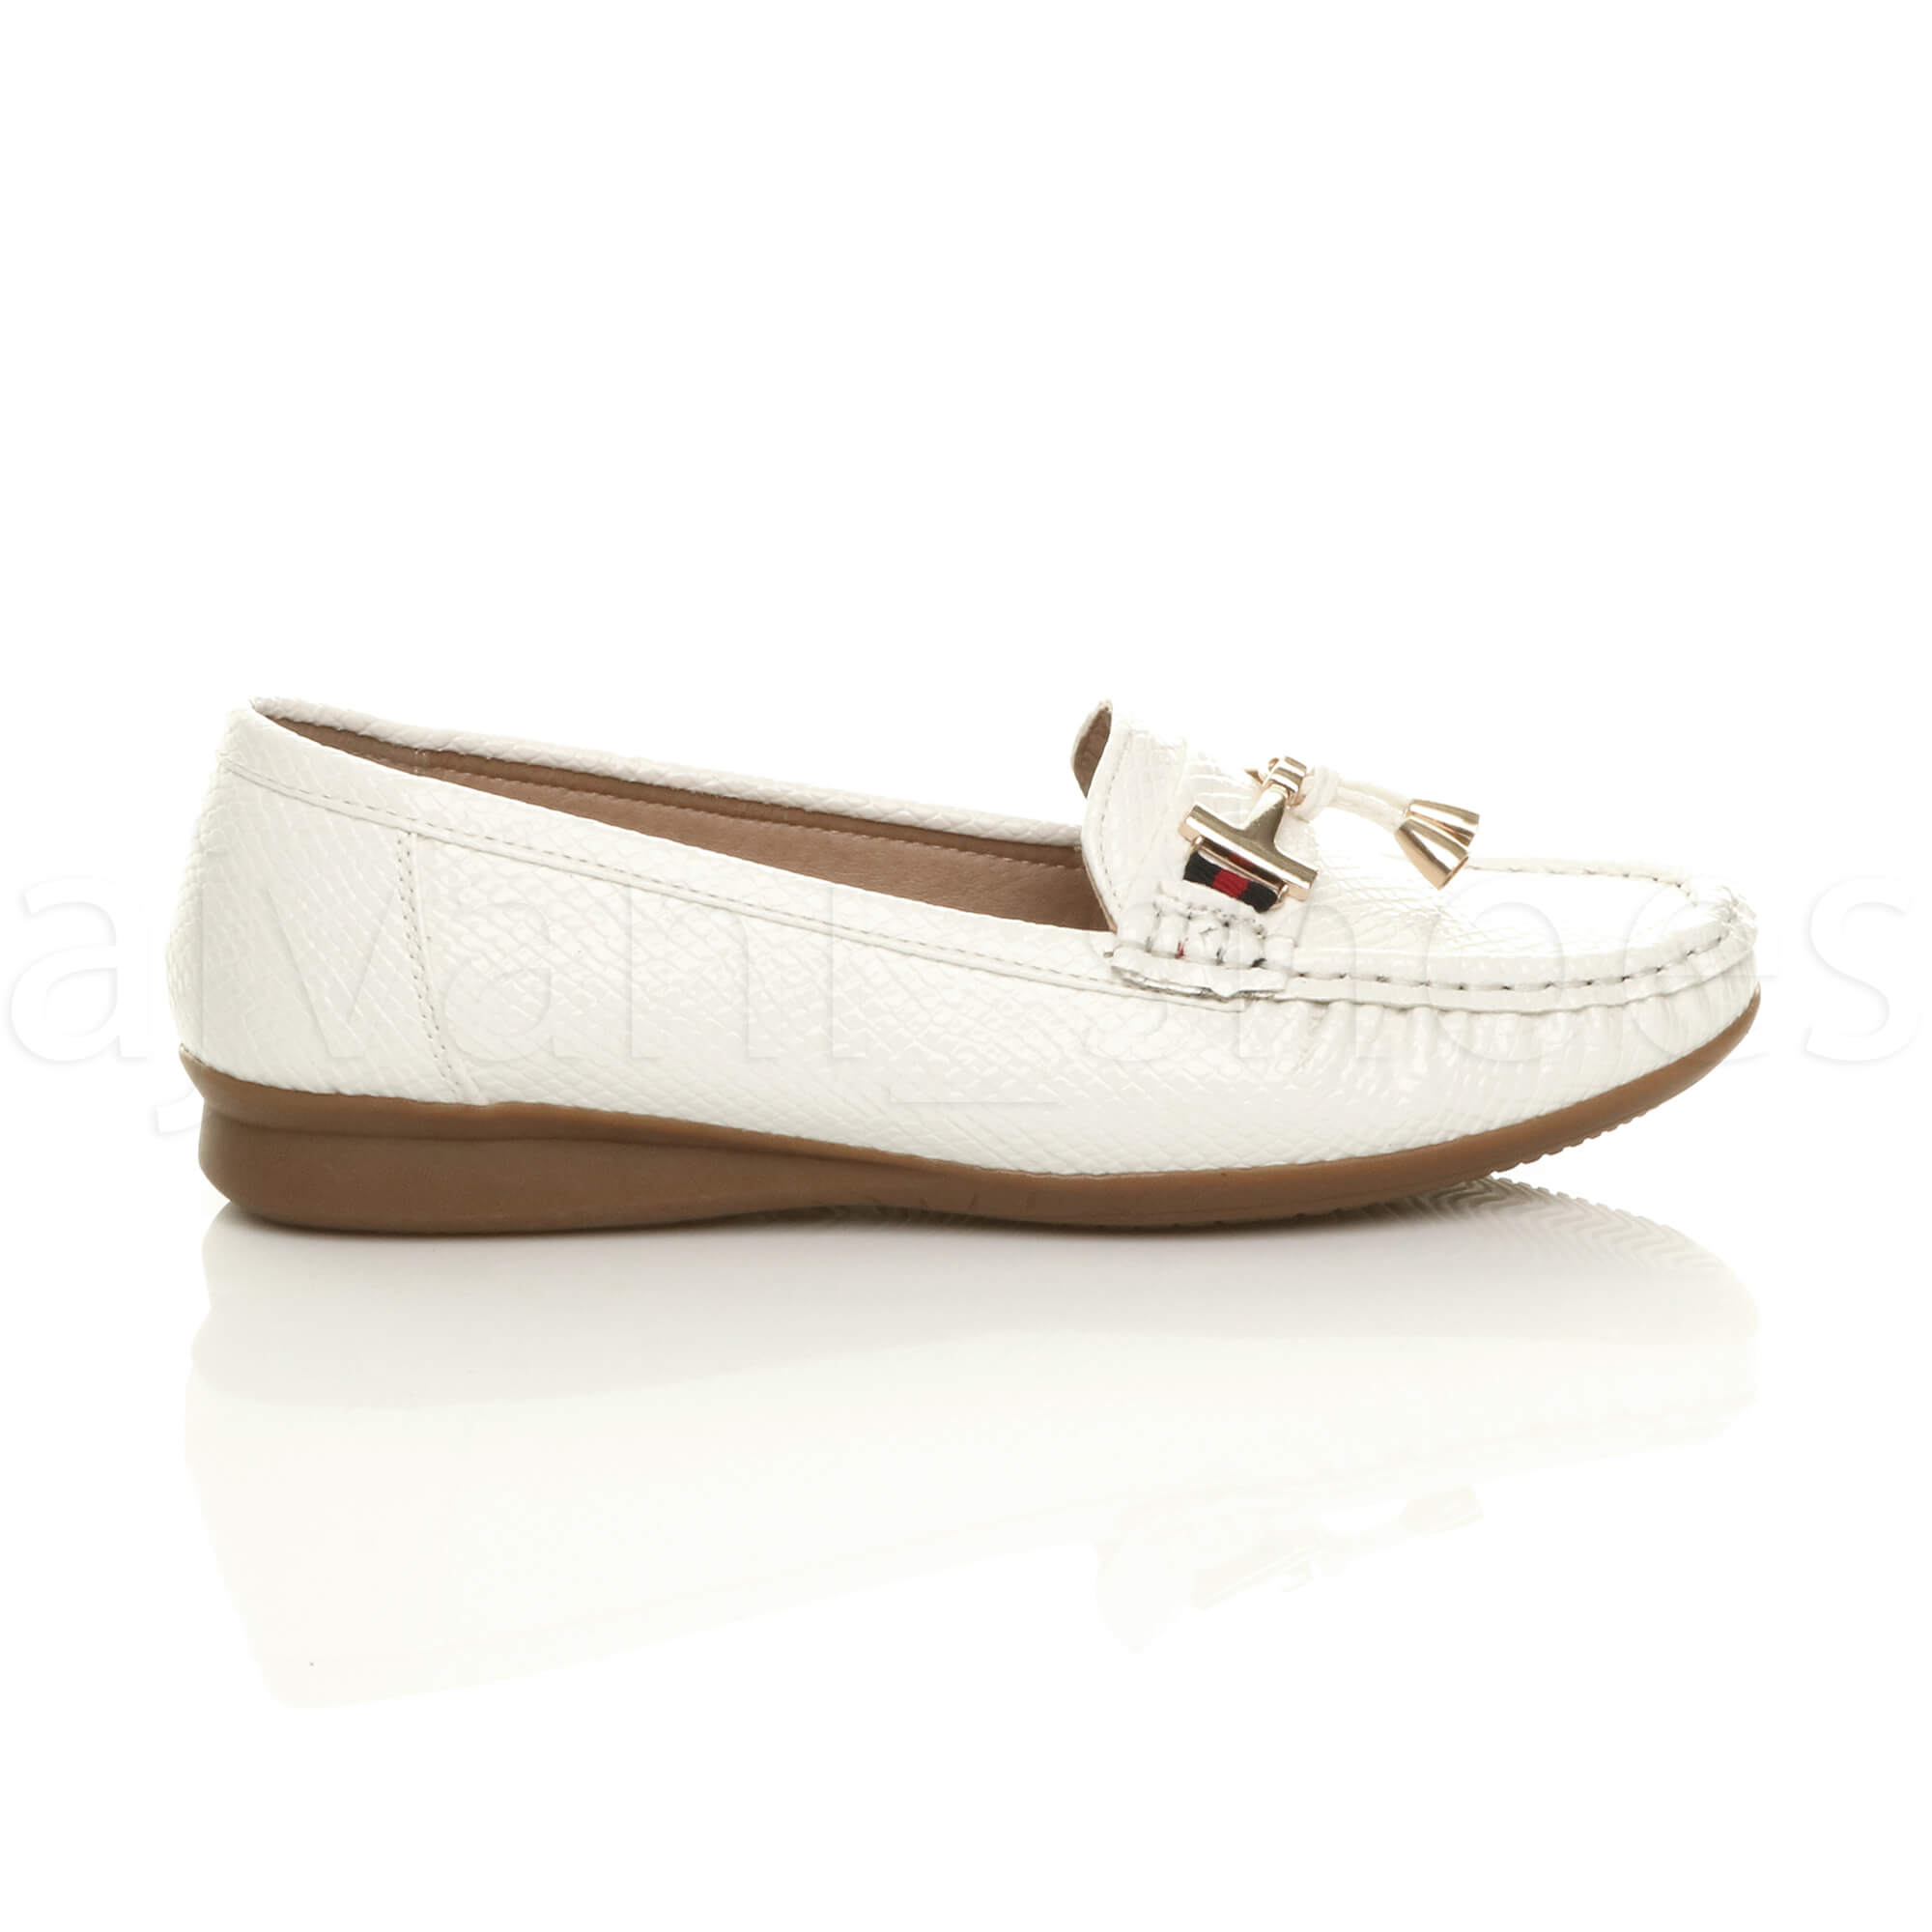 WOMENS-LADIES-LOW-HEEL-WEDGE-LEATHER-TASSEL-LOAFERS-COMFORT-MOCCASINS-SHOES-SIZE thumbnail 51